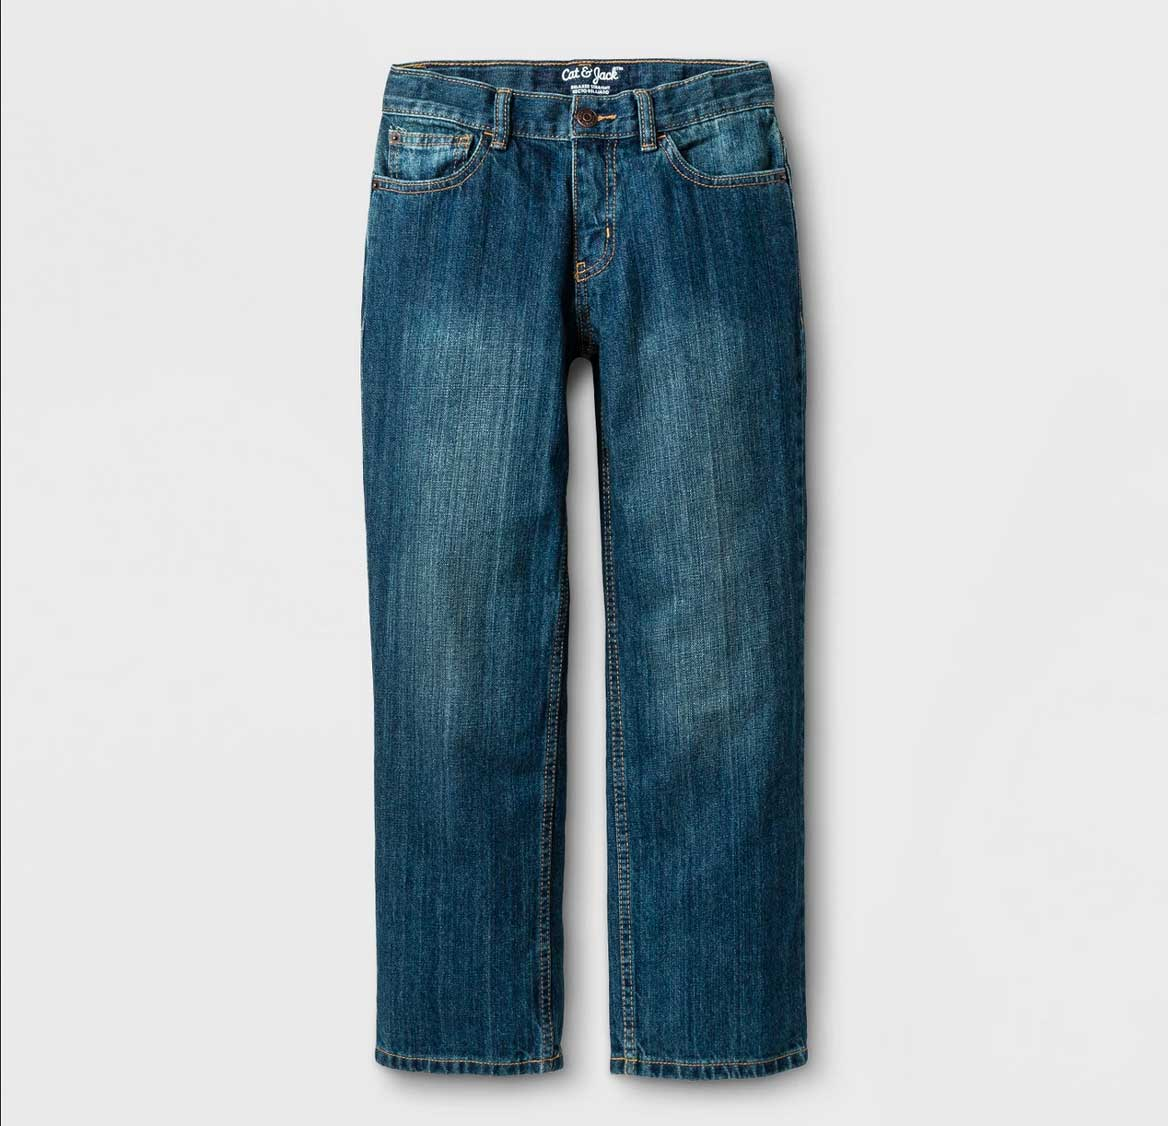 Cat & Jack Relaxed Medium Wash Straight Jeans